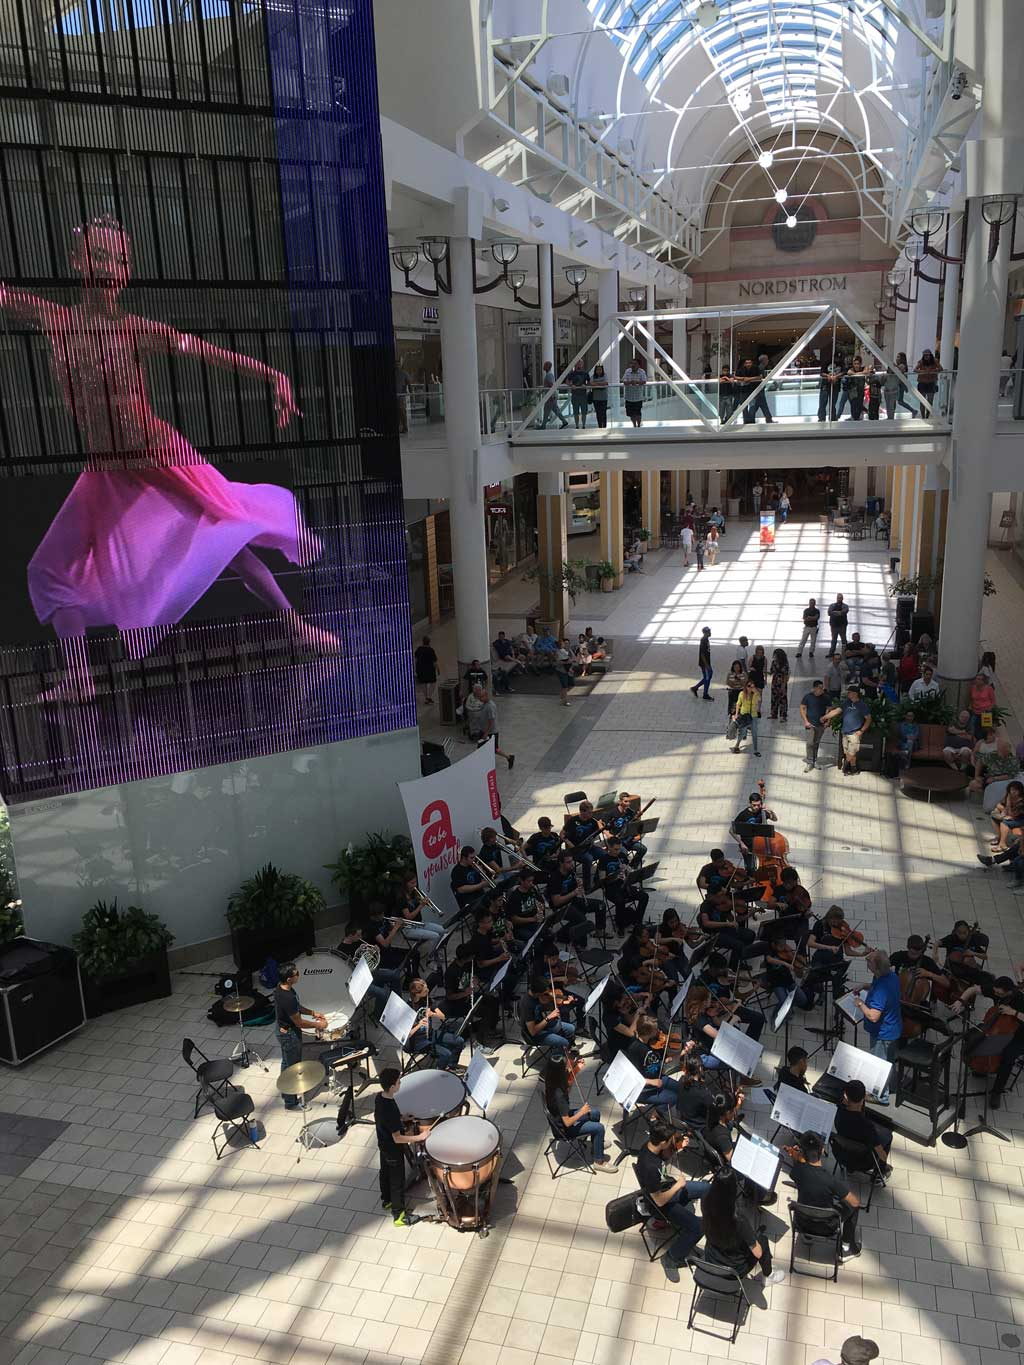 Image of Sac Youth Symphony Music Event - Band playing